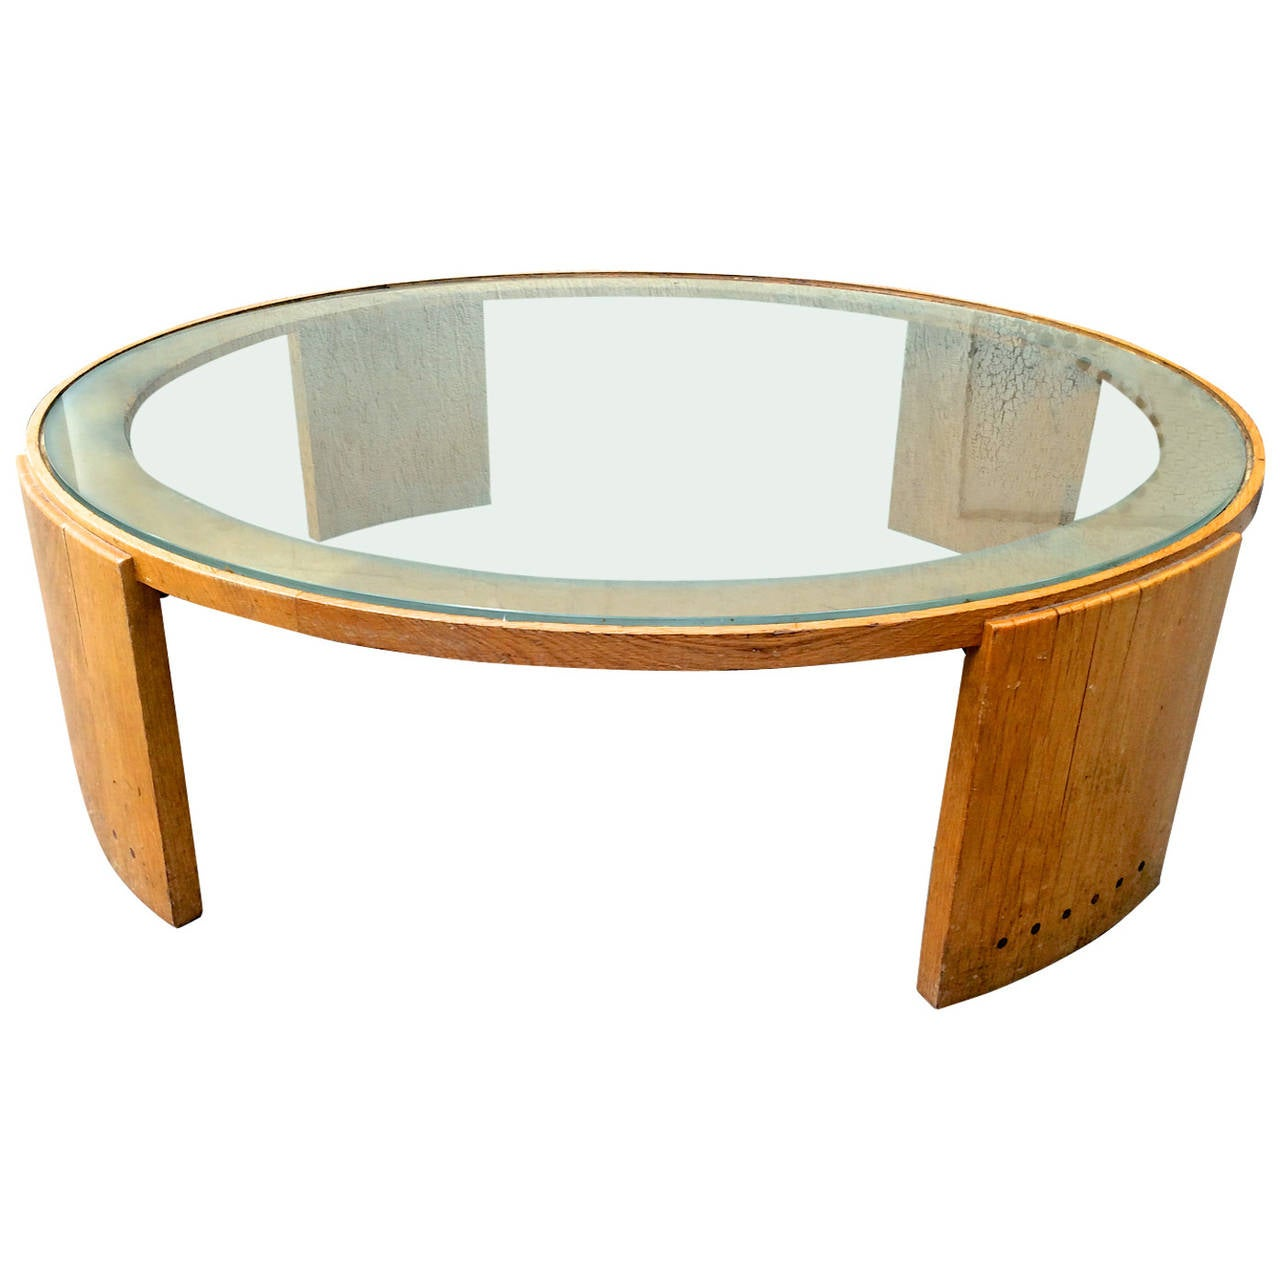 Jacques Adnet Very Large Round Coffee Table In Oak And